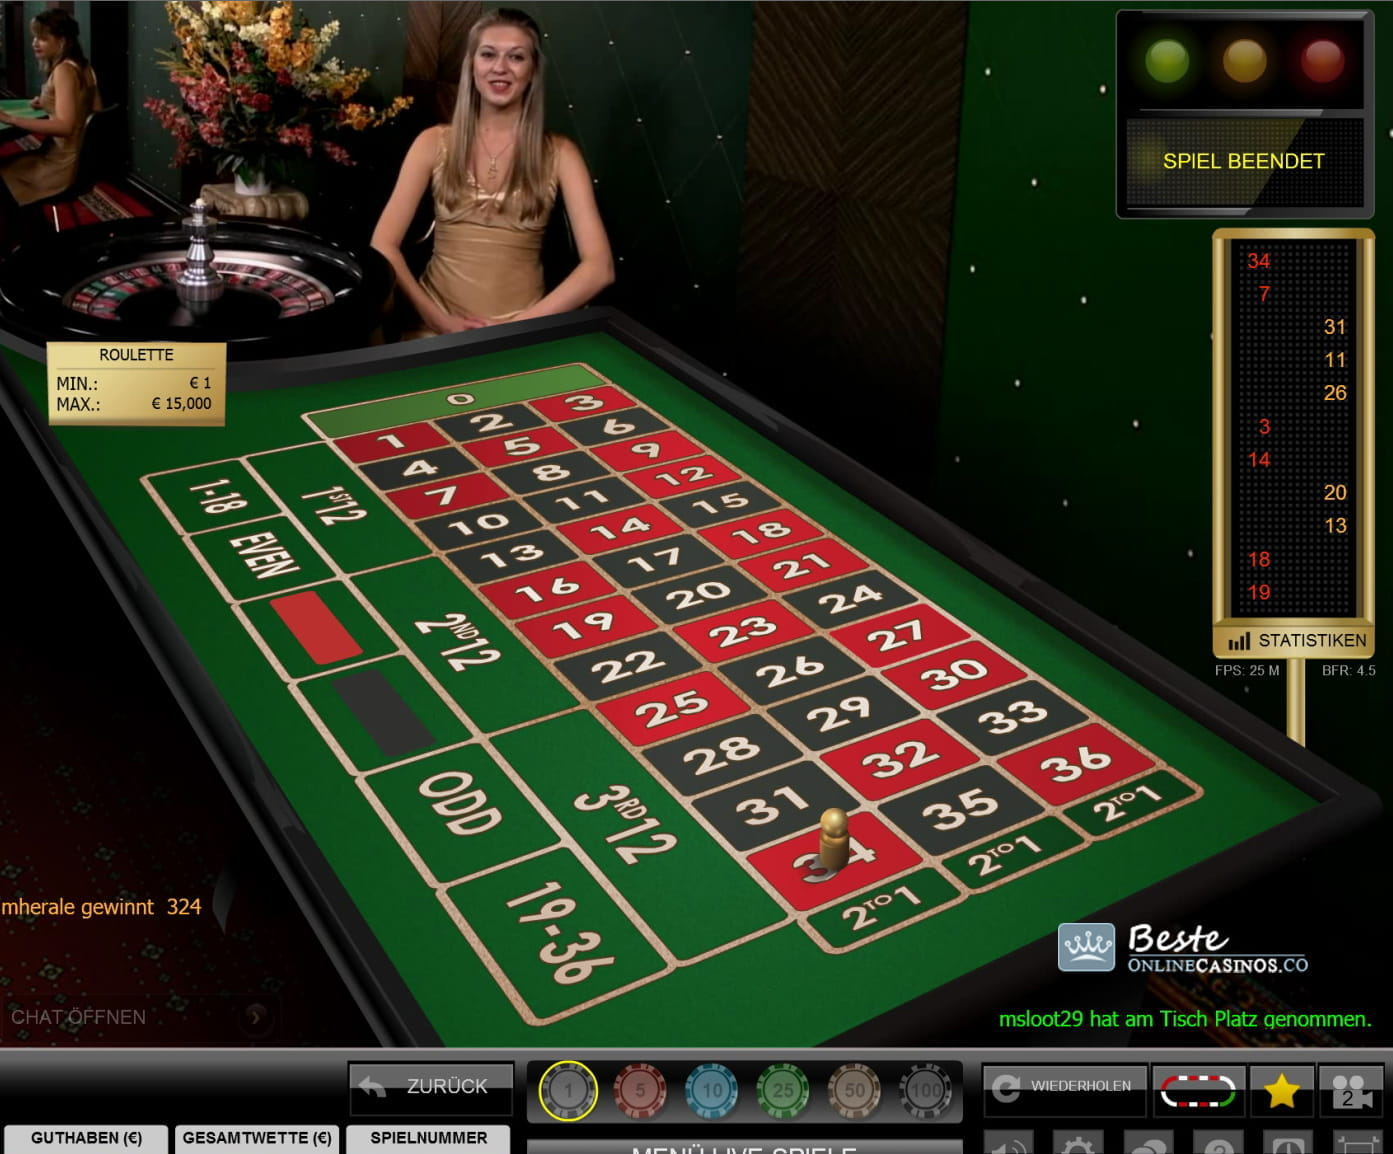 online casino gaming sites jackpot spiele